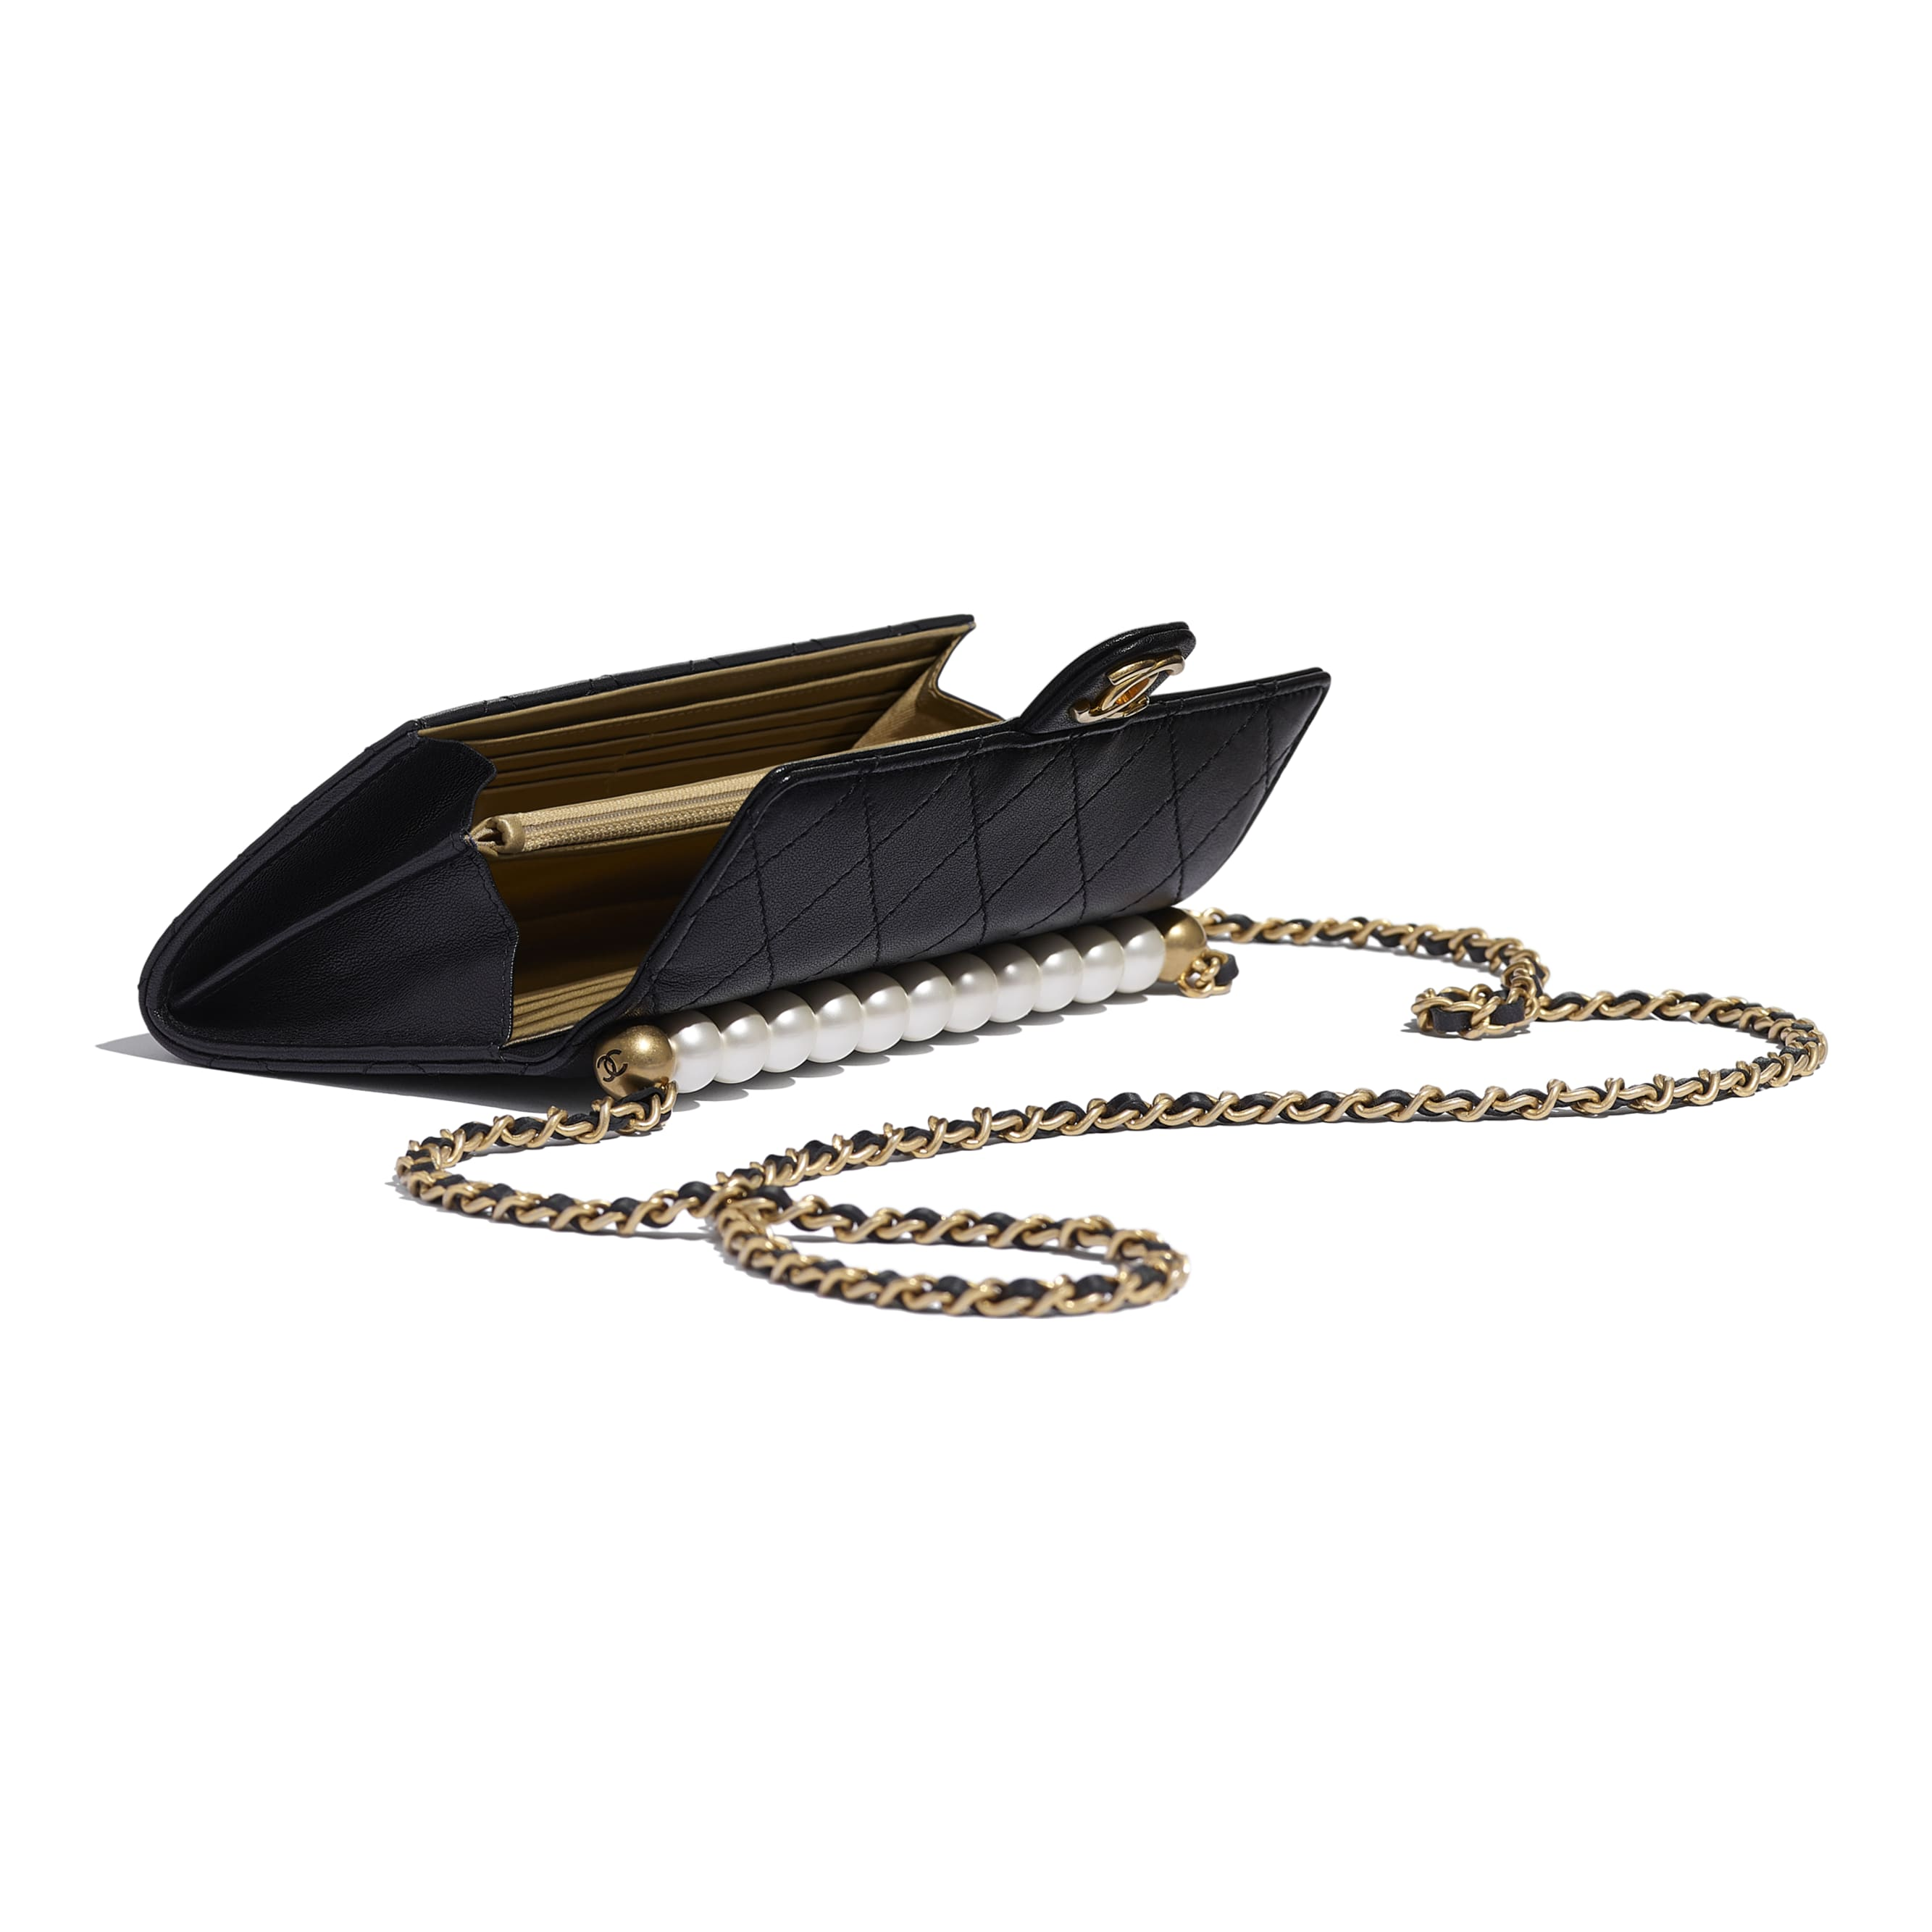 Clutch with Chain - Black - Goatskin, Imitation Pearls & Gold-Tone Metal - CHANEL - Extra view - see standard sized version